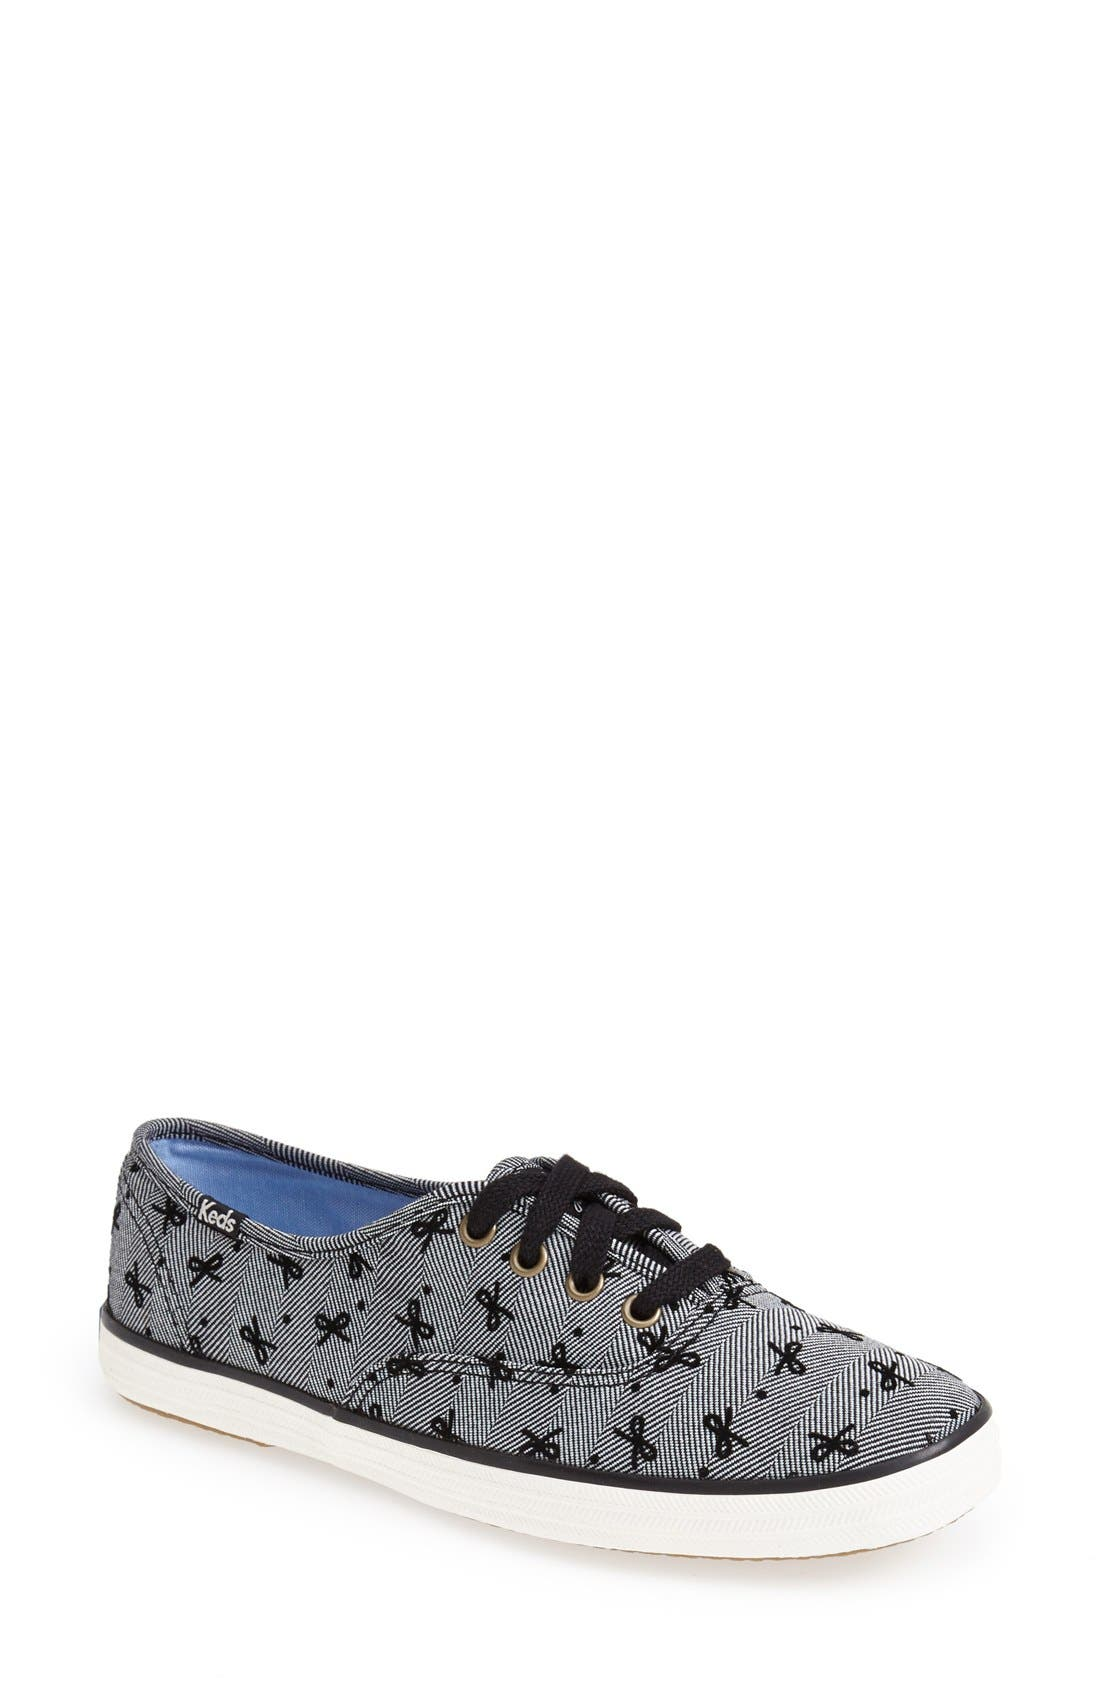 Main Image - Keds® Taylor Swift 'Champion - Bow' Sneaker (Women)